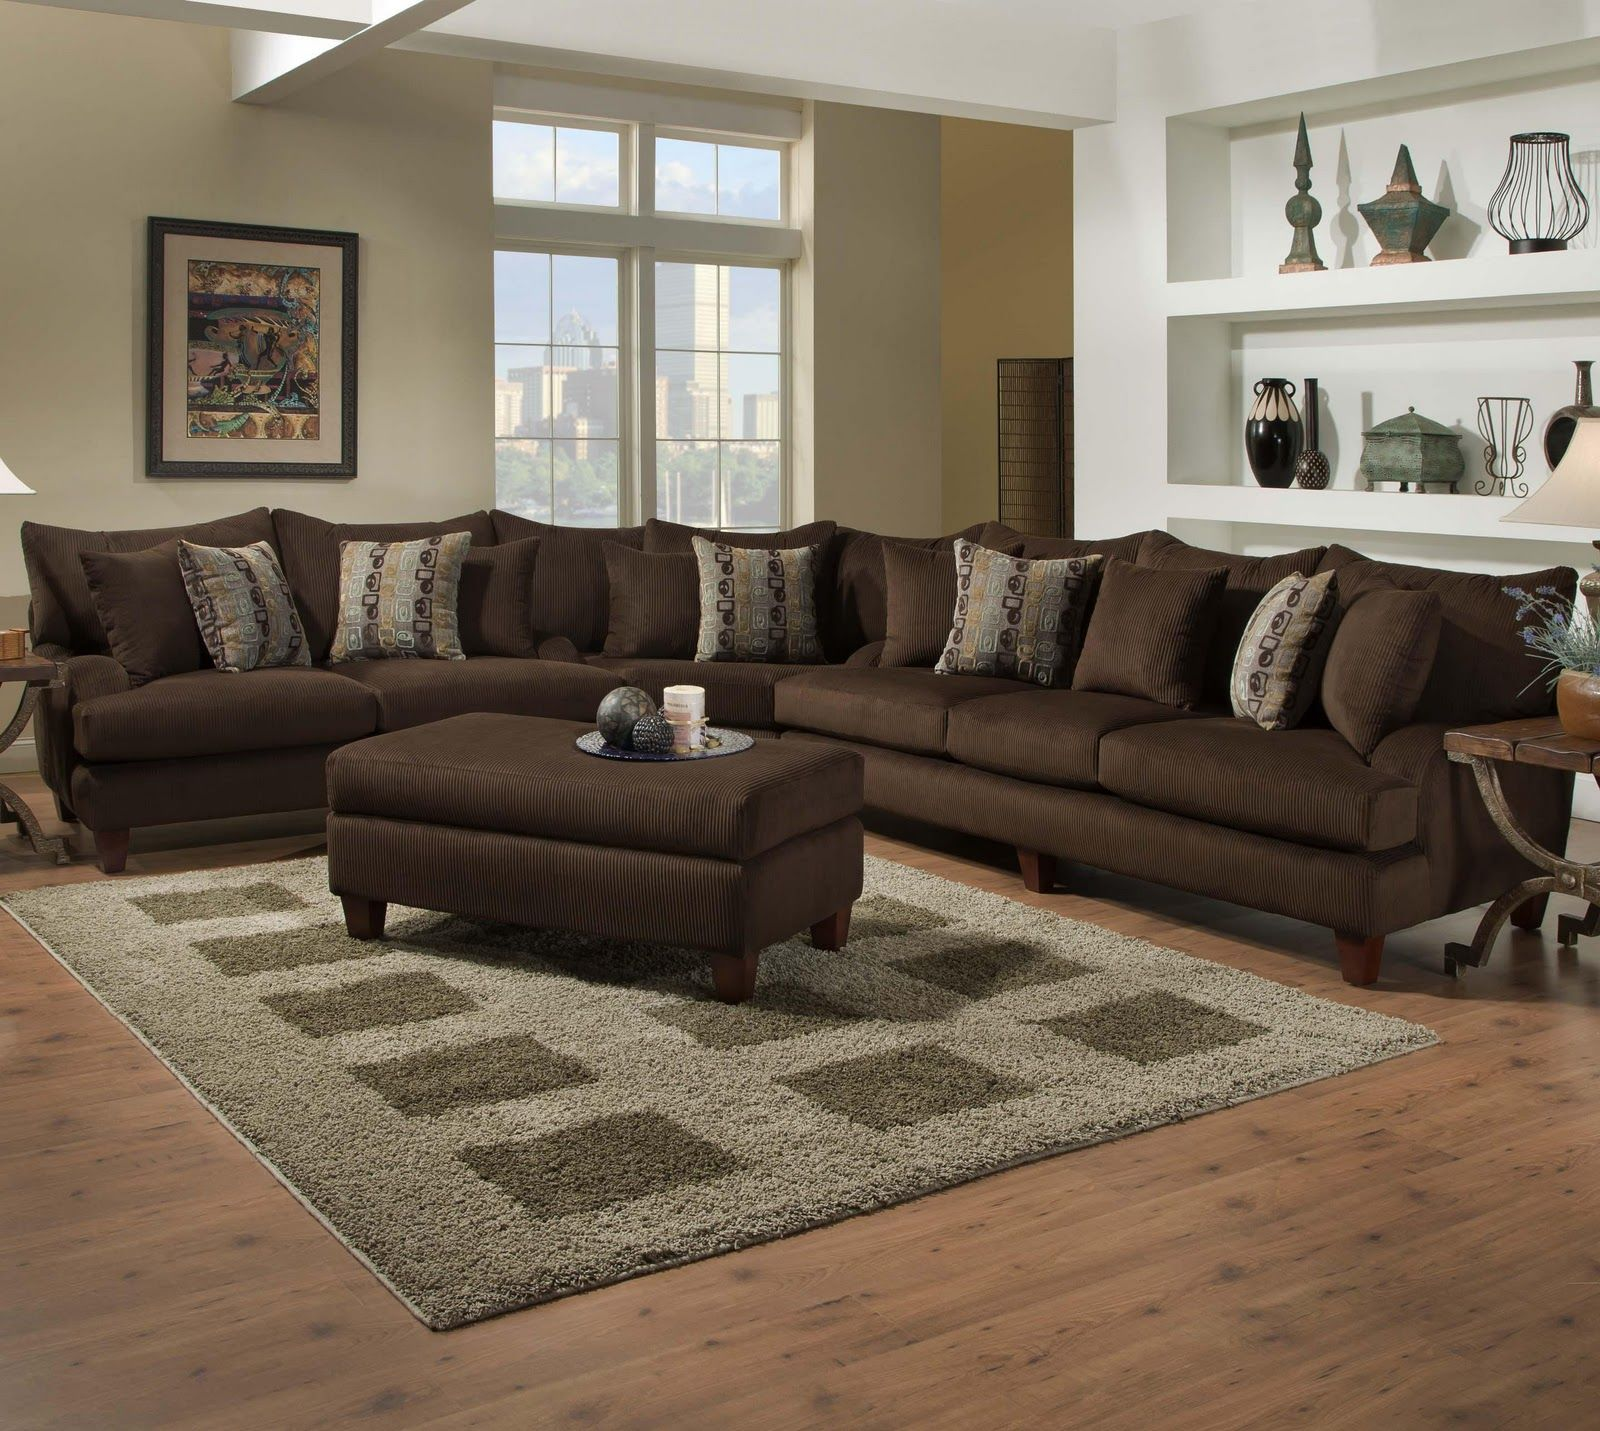 new 7 seat sectional sofa picture-Latest 7 Seat Sectional sofa Image